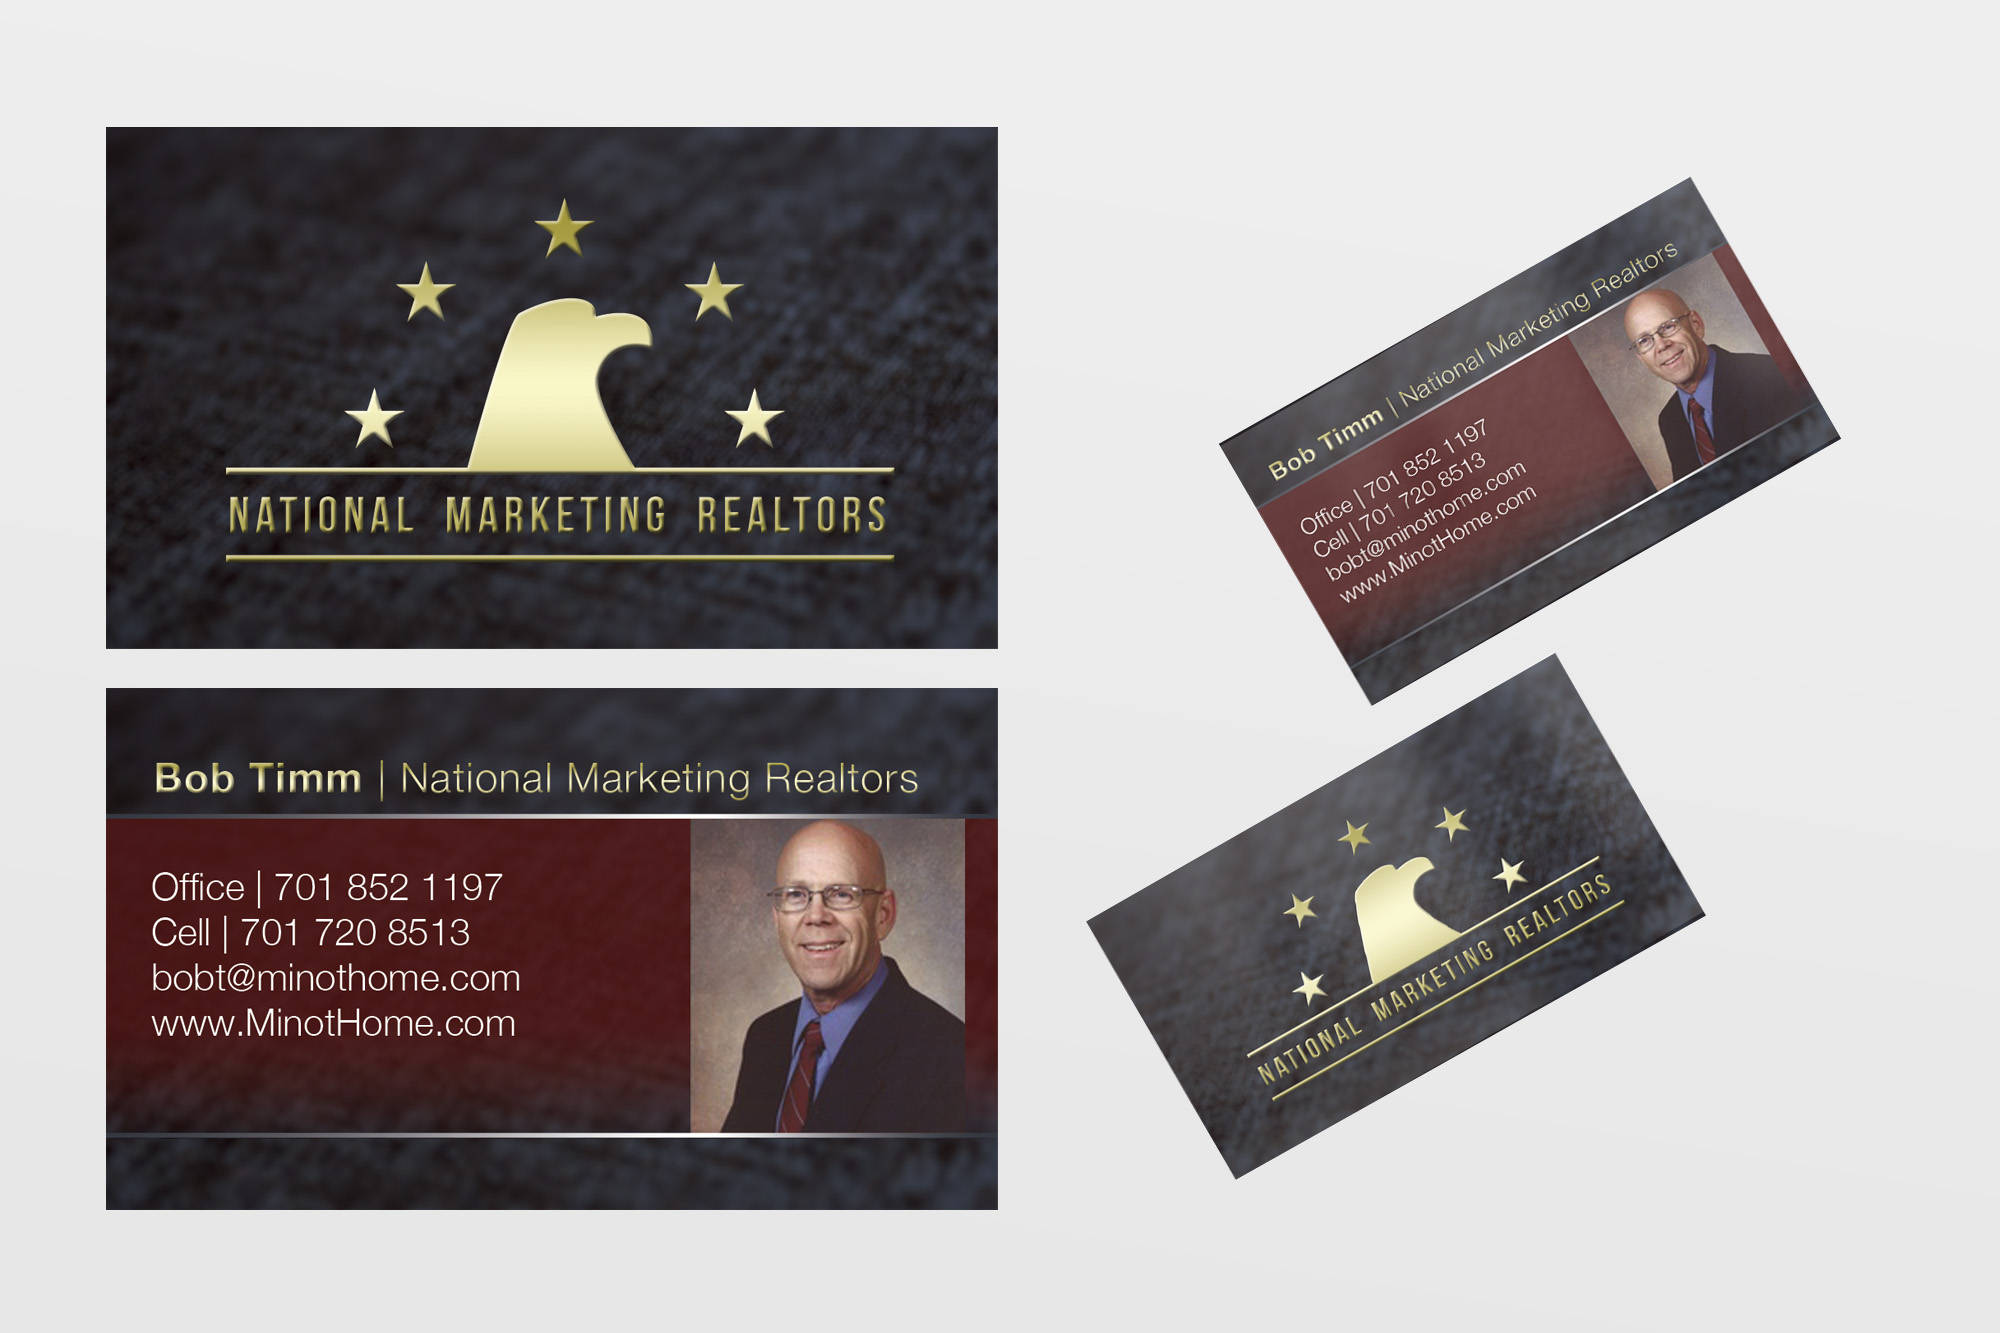 Awesome images of business cards for realtors business cards and logo and business card update magicingreecefo Image collections